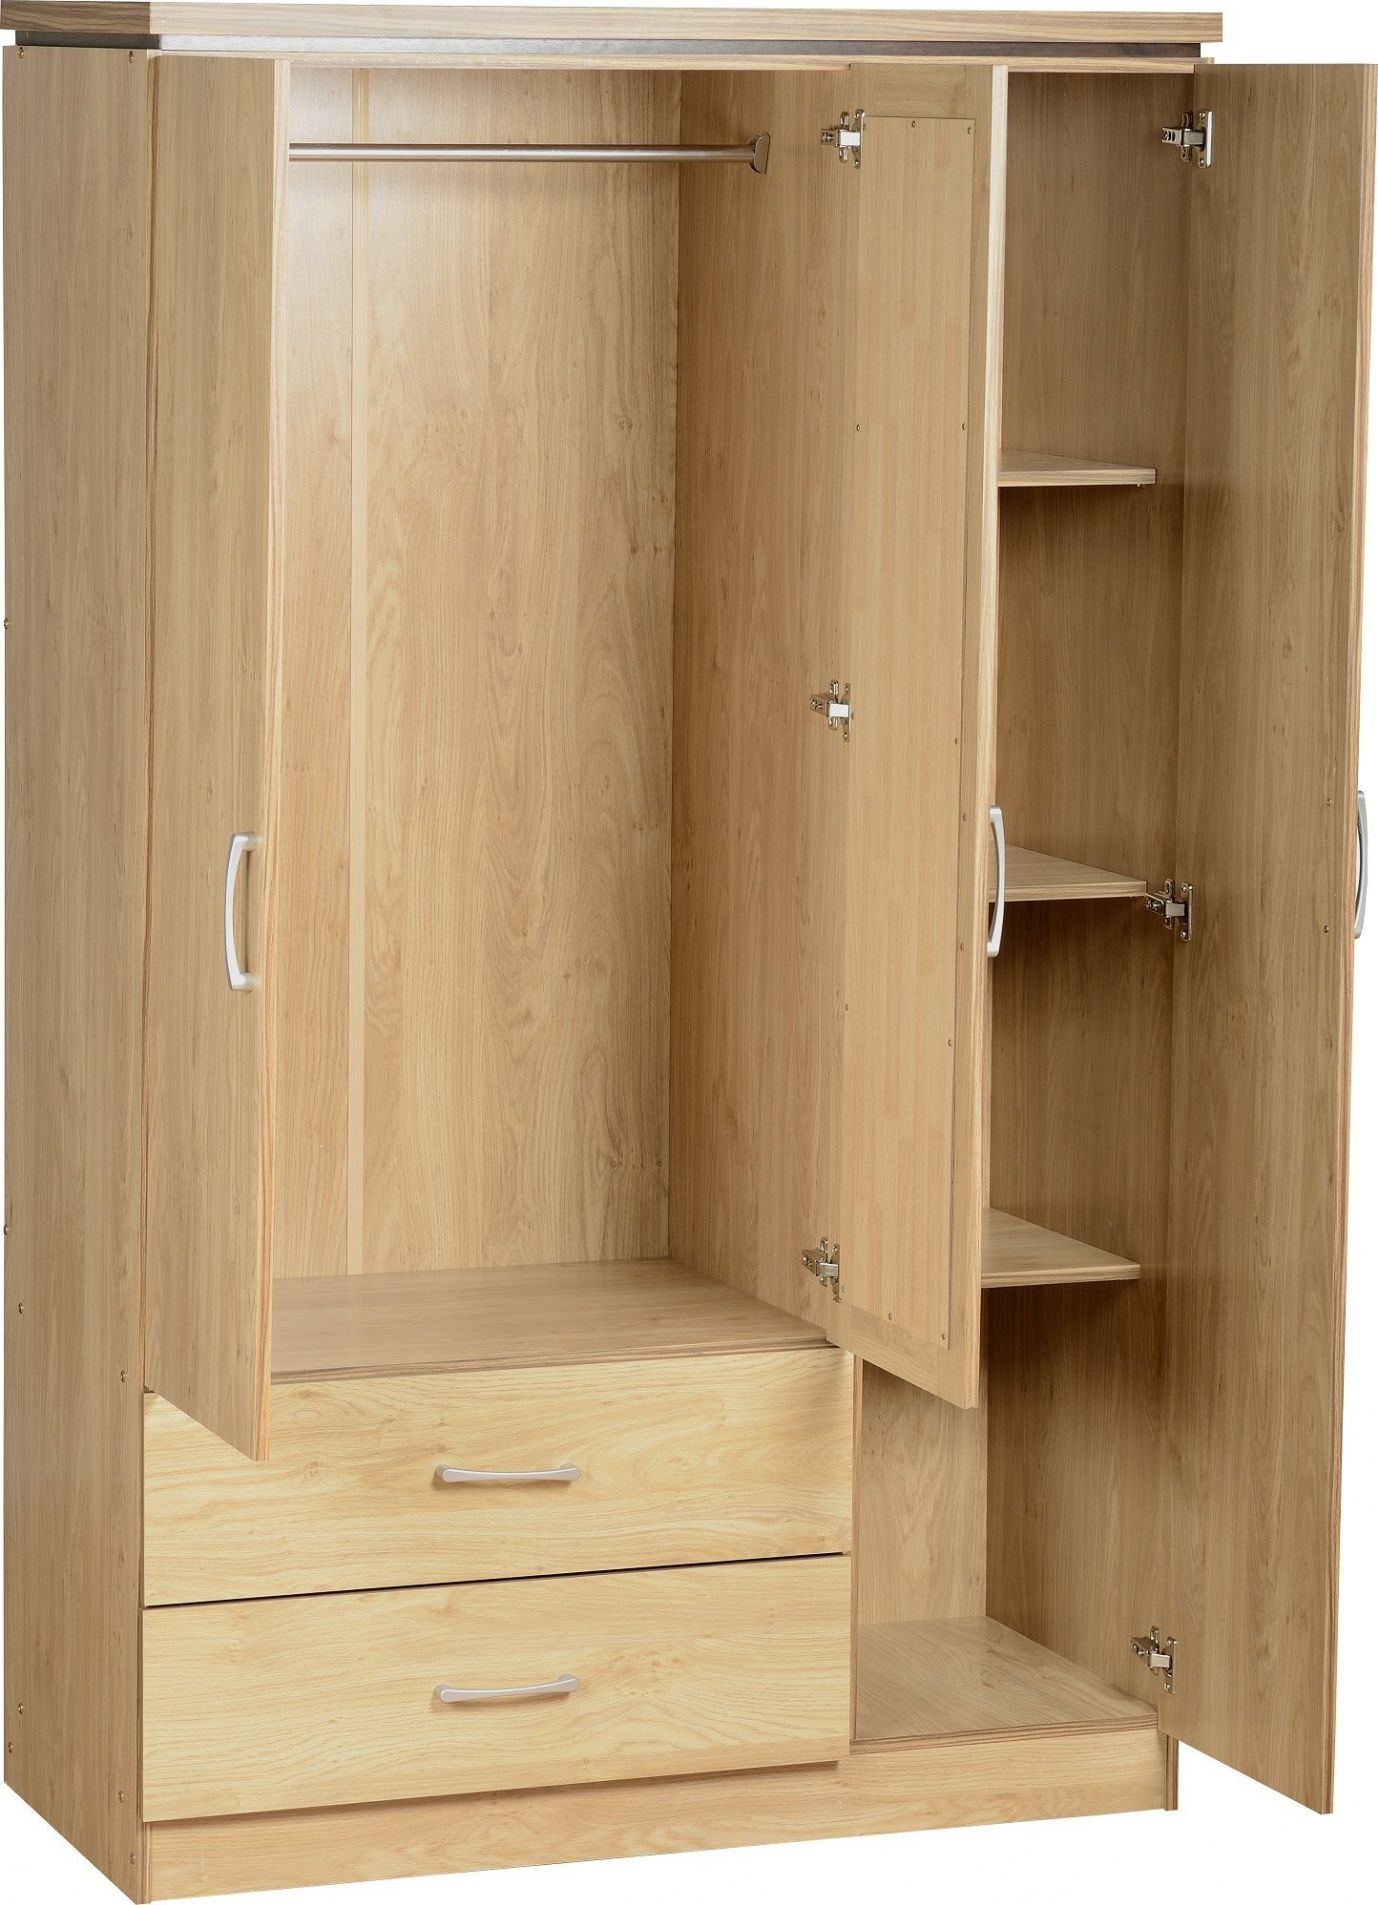 Wardrobes With Shelves Door Mirror Wardrobe With Shelves Mirror For Wardrobe With Drawers And Shelves (Image 15 of 15)